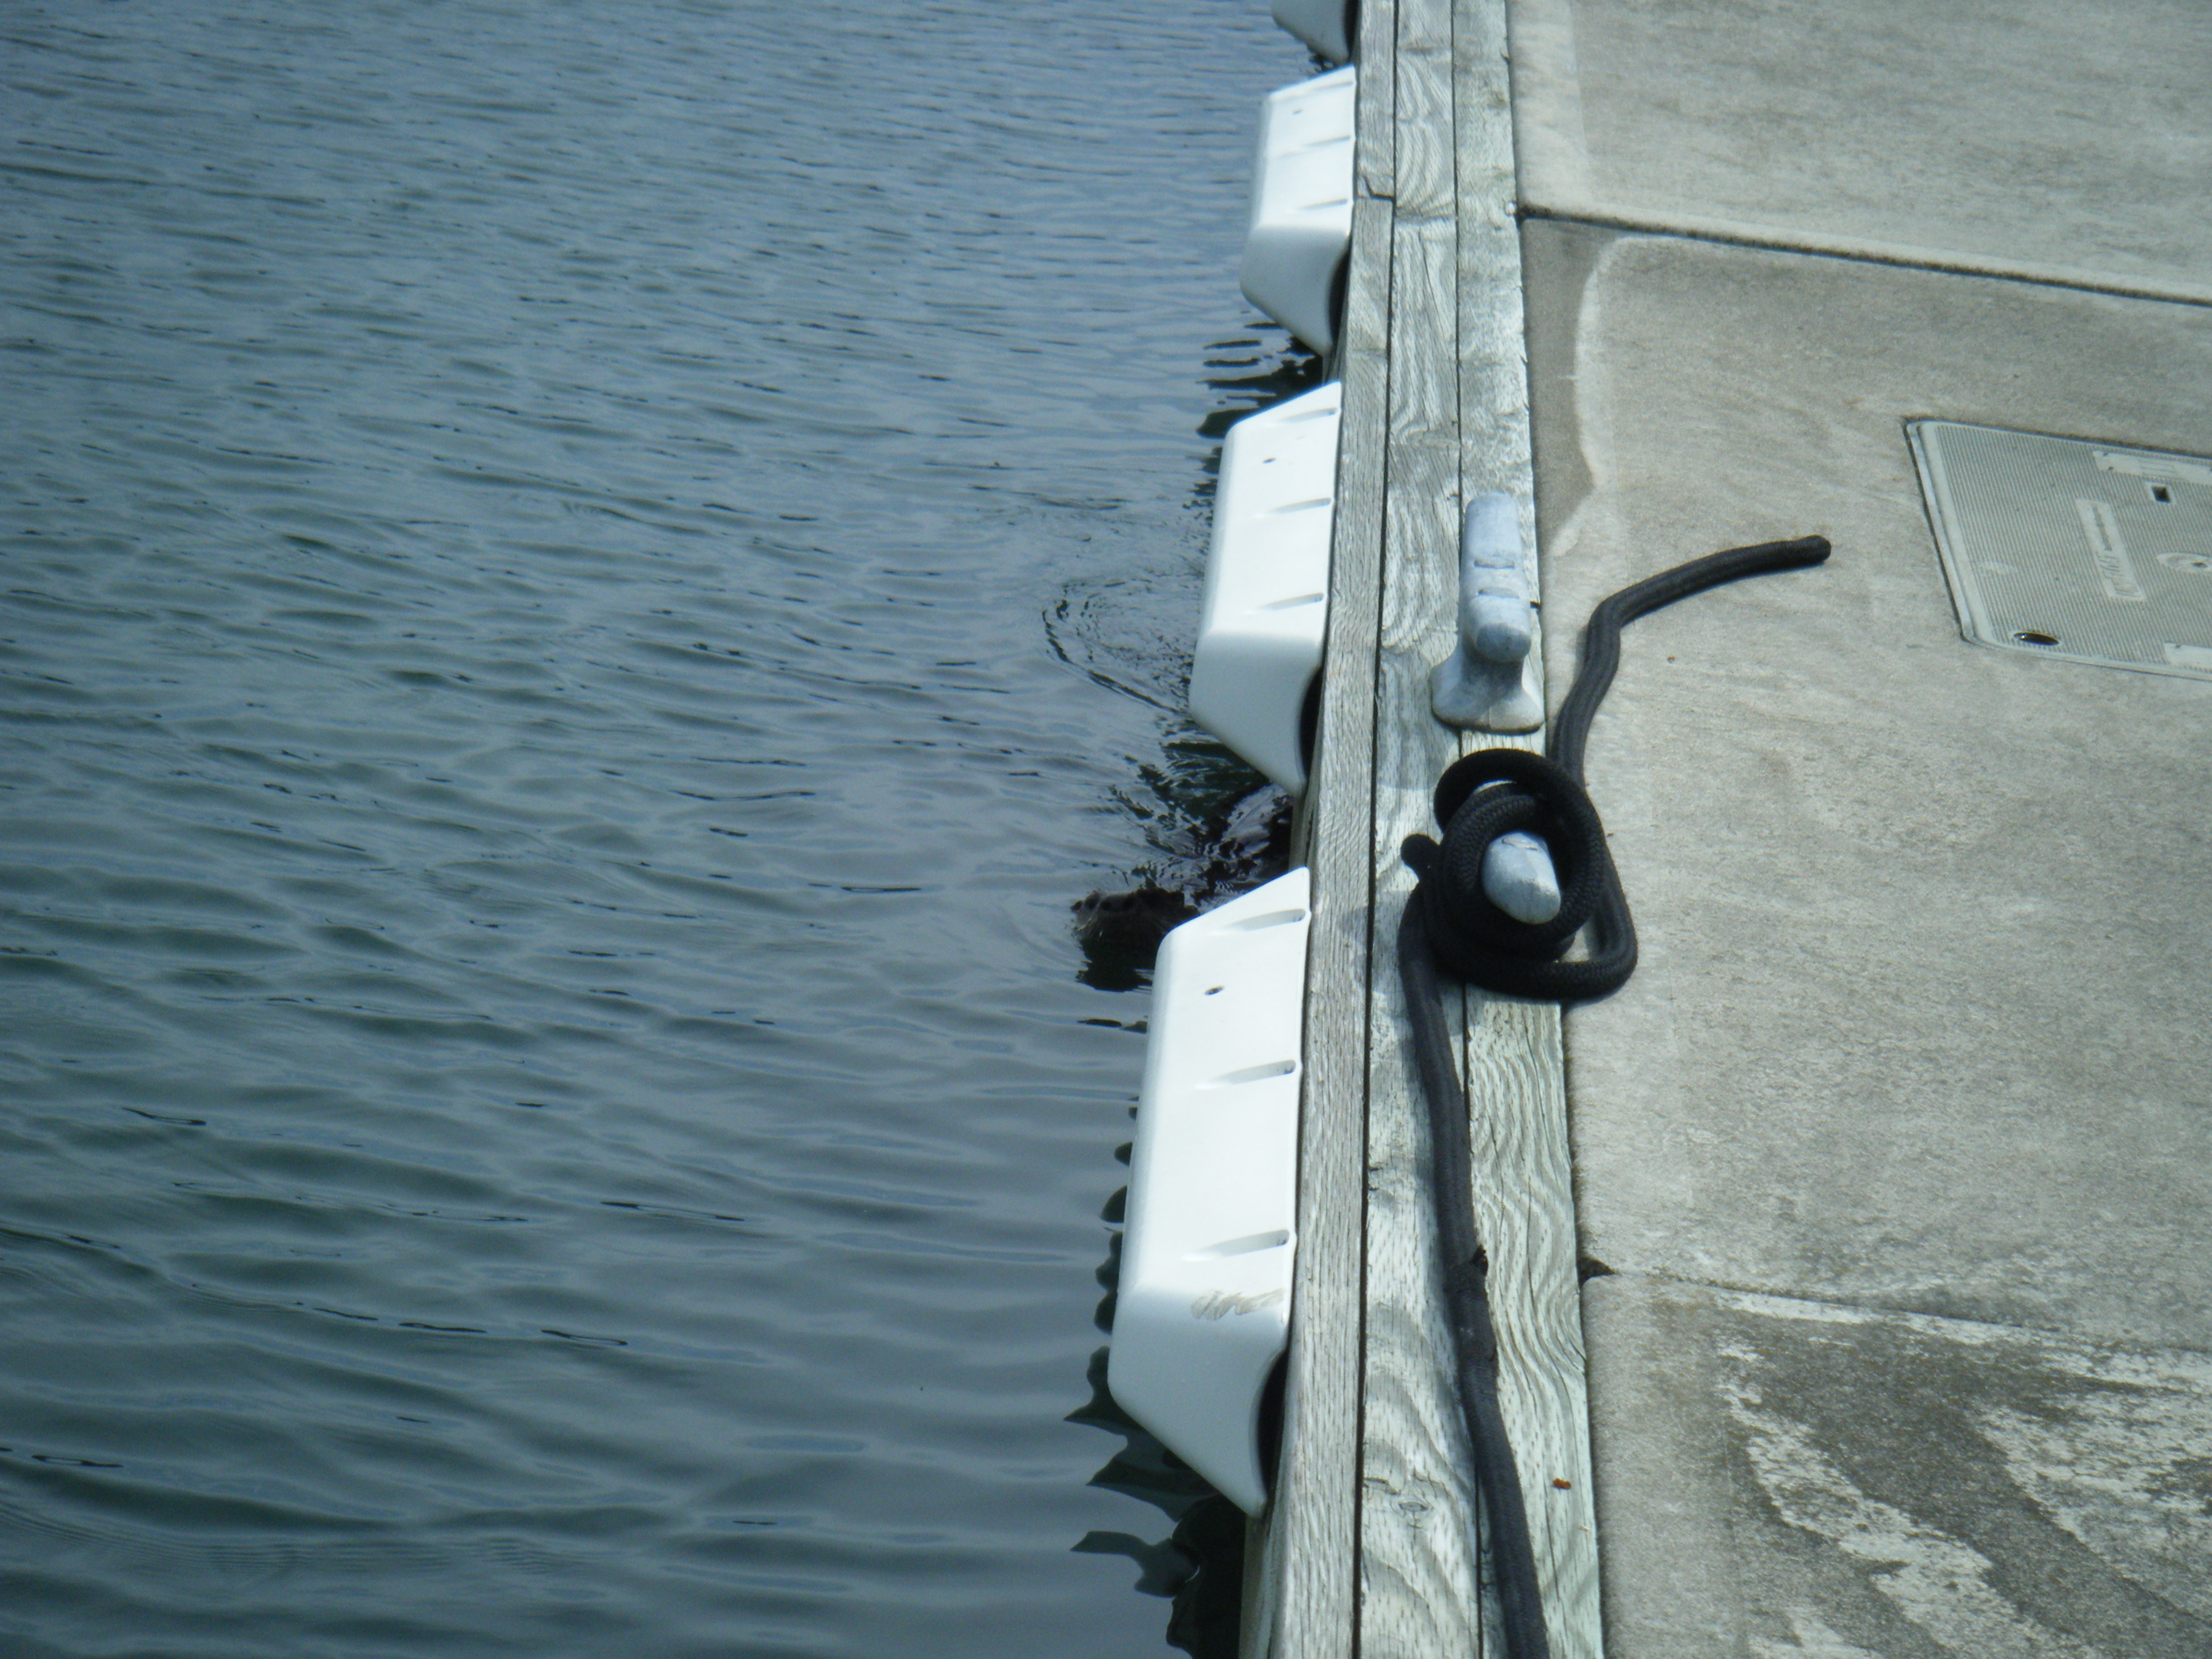 Sea Otter hangin out at the dock